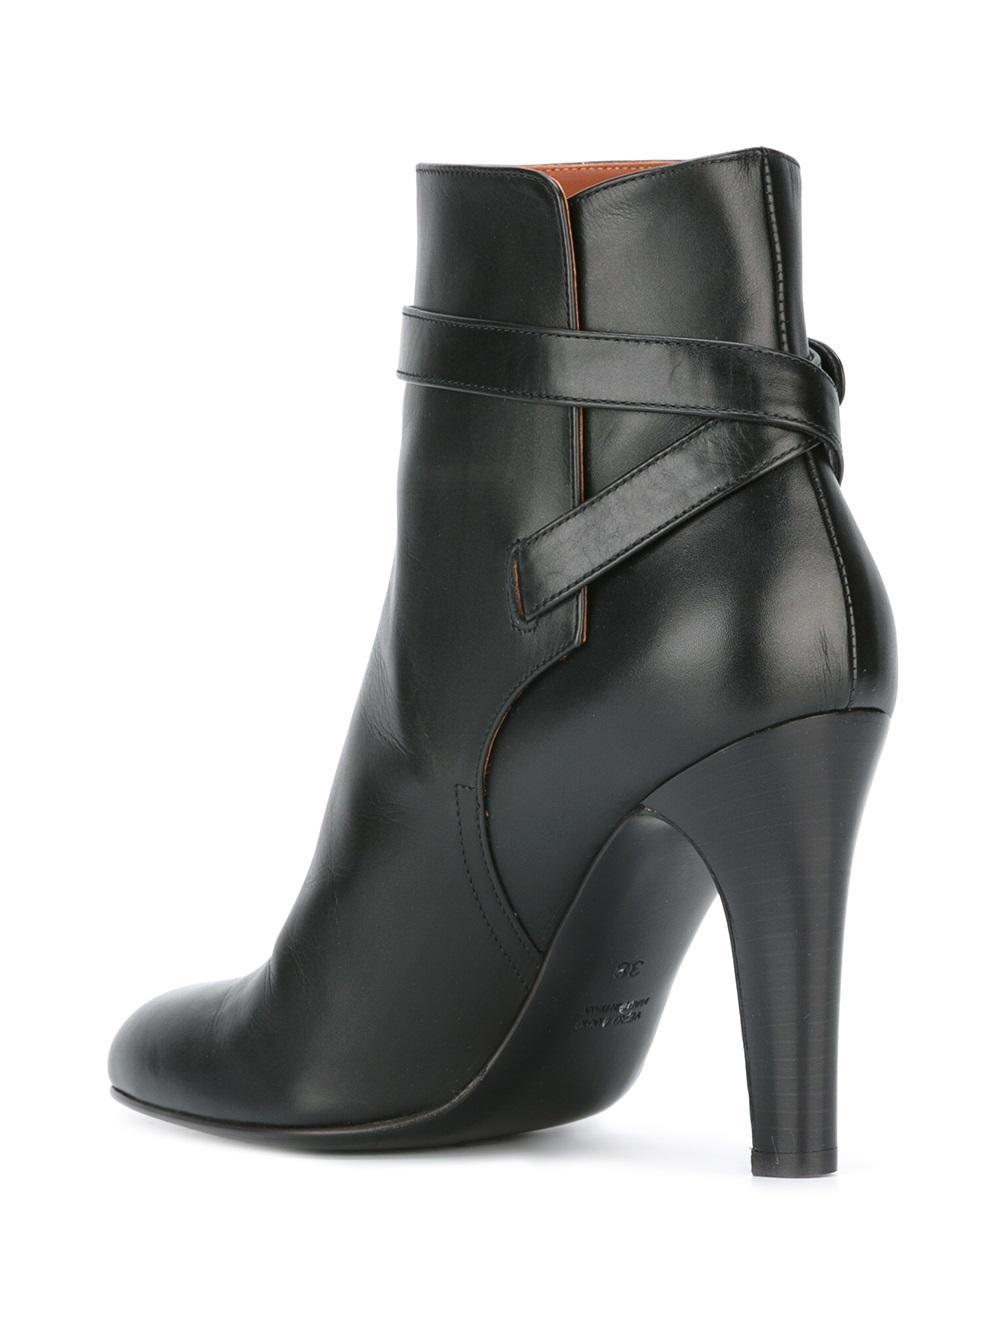 Clearance Limited Edition Outlet Hot Sale Karluz boots - Black Michel Vivien New Buy Cheap Cheapest 8xwR2ahOAH